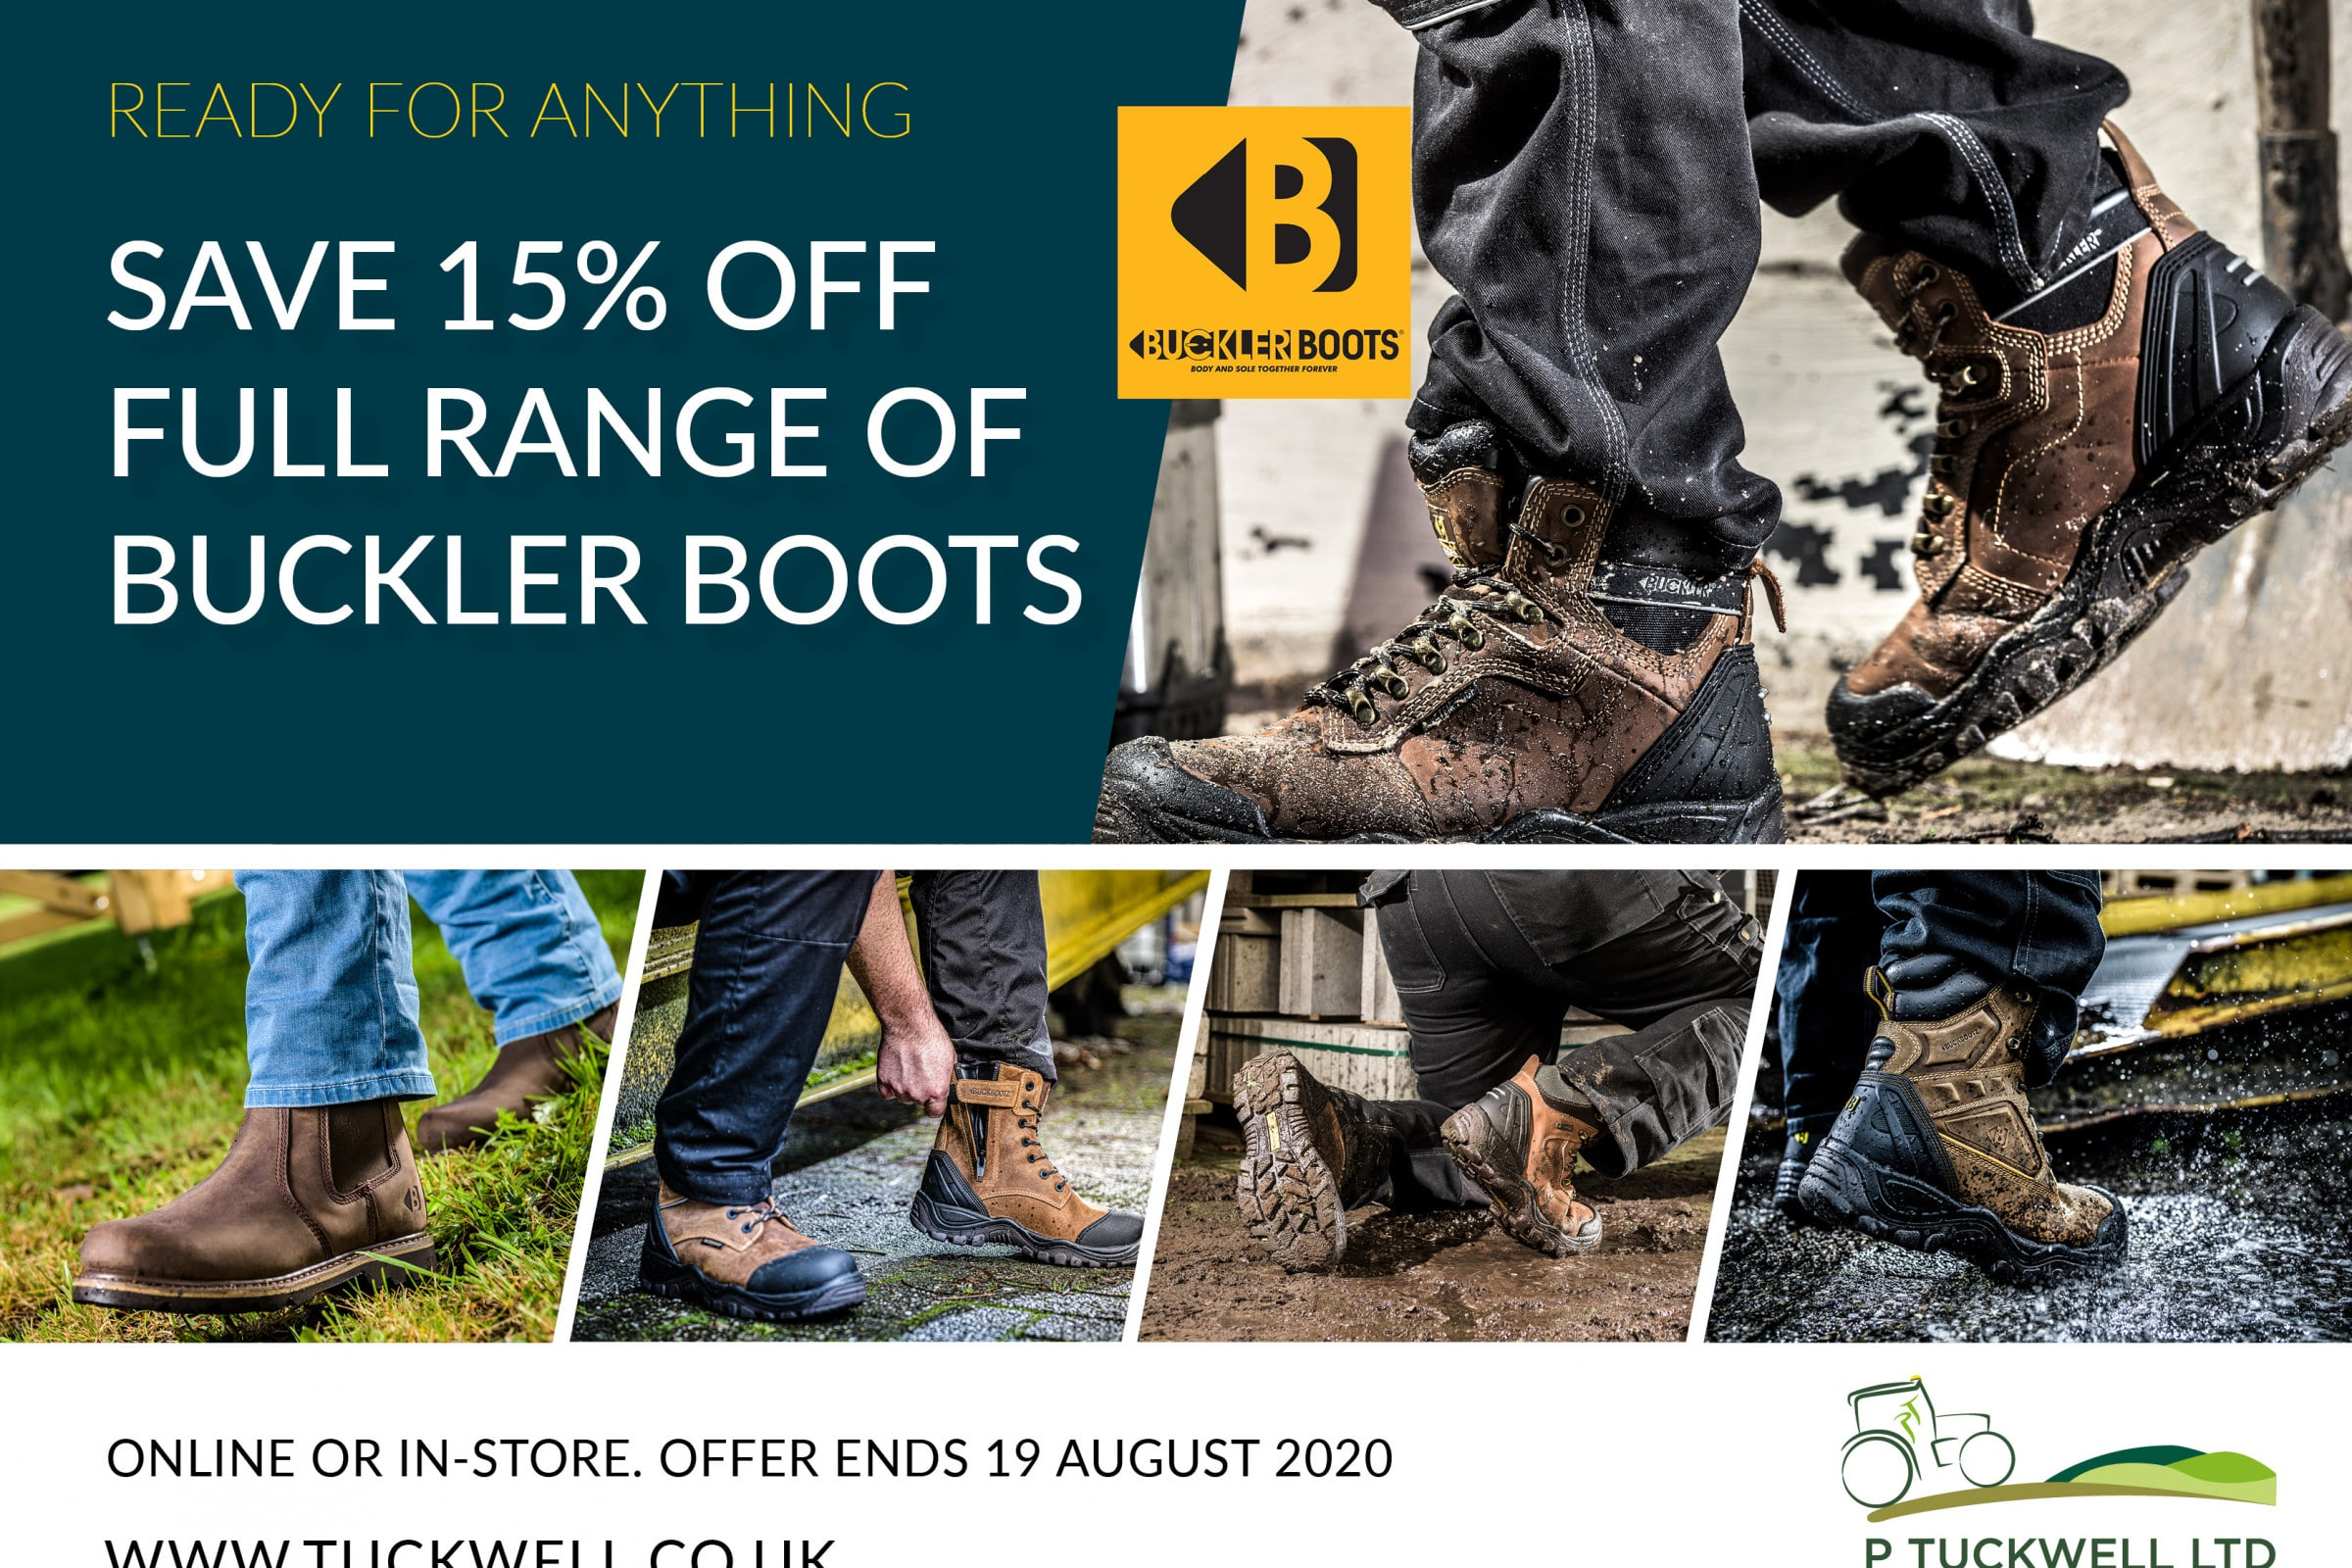 SAVE 15% on full range of Buckler Boots